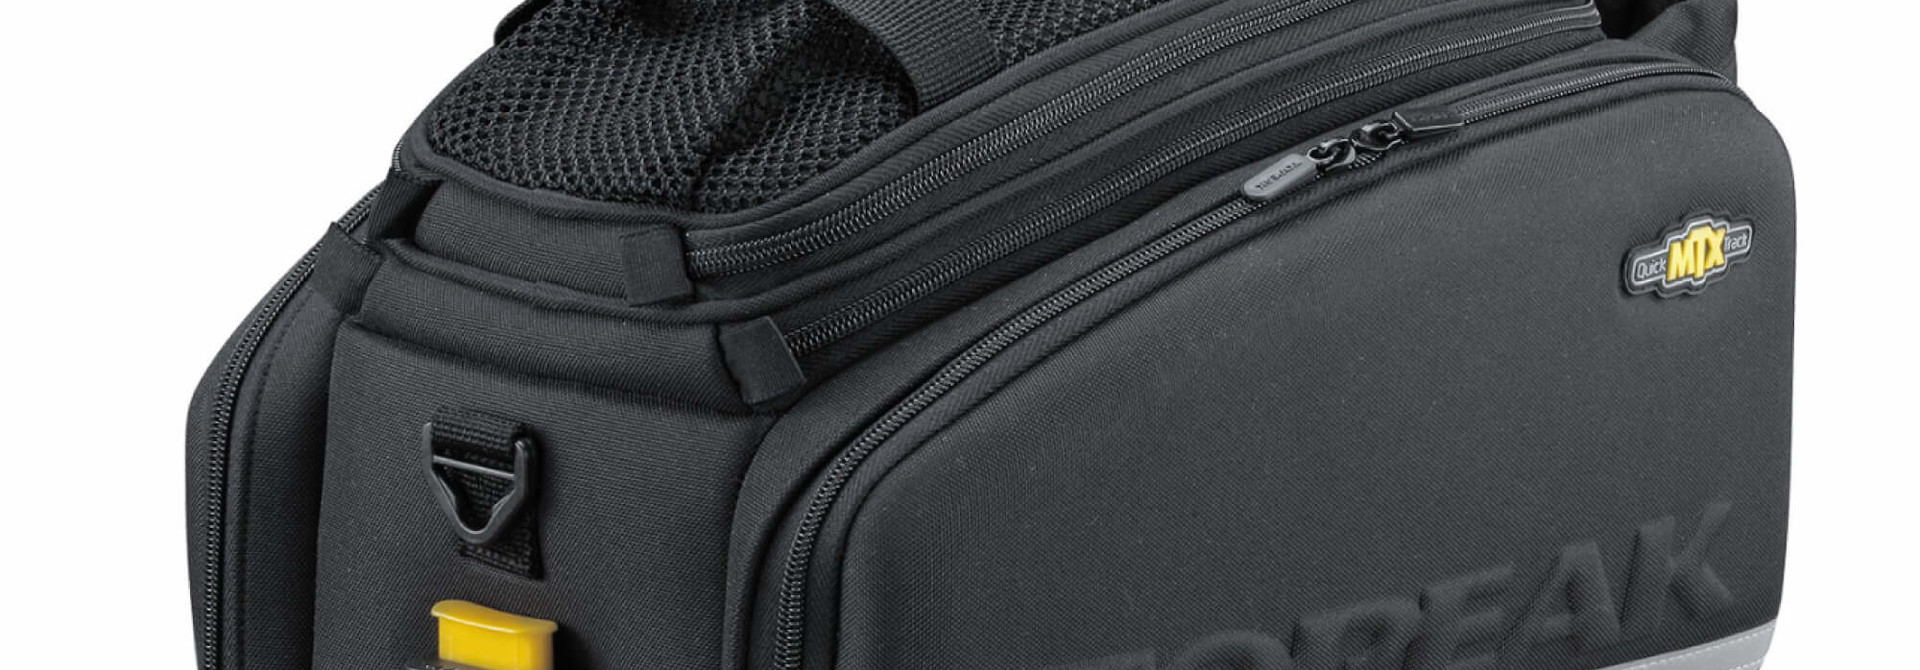 MTX Trunk Bag DXP Expandable W/Bot Hold